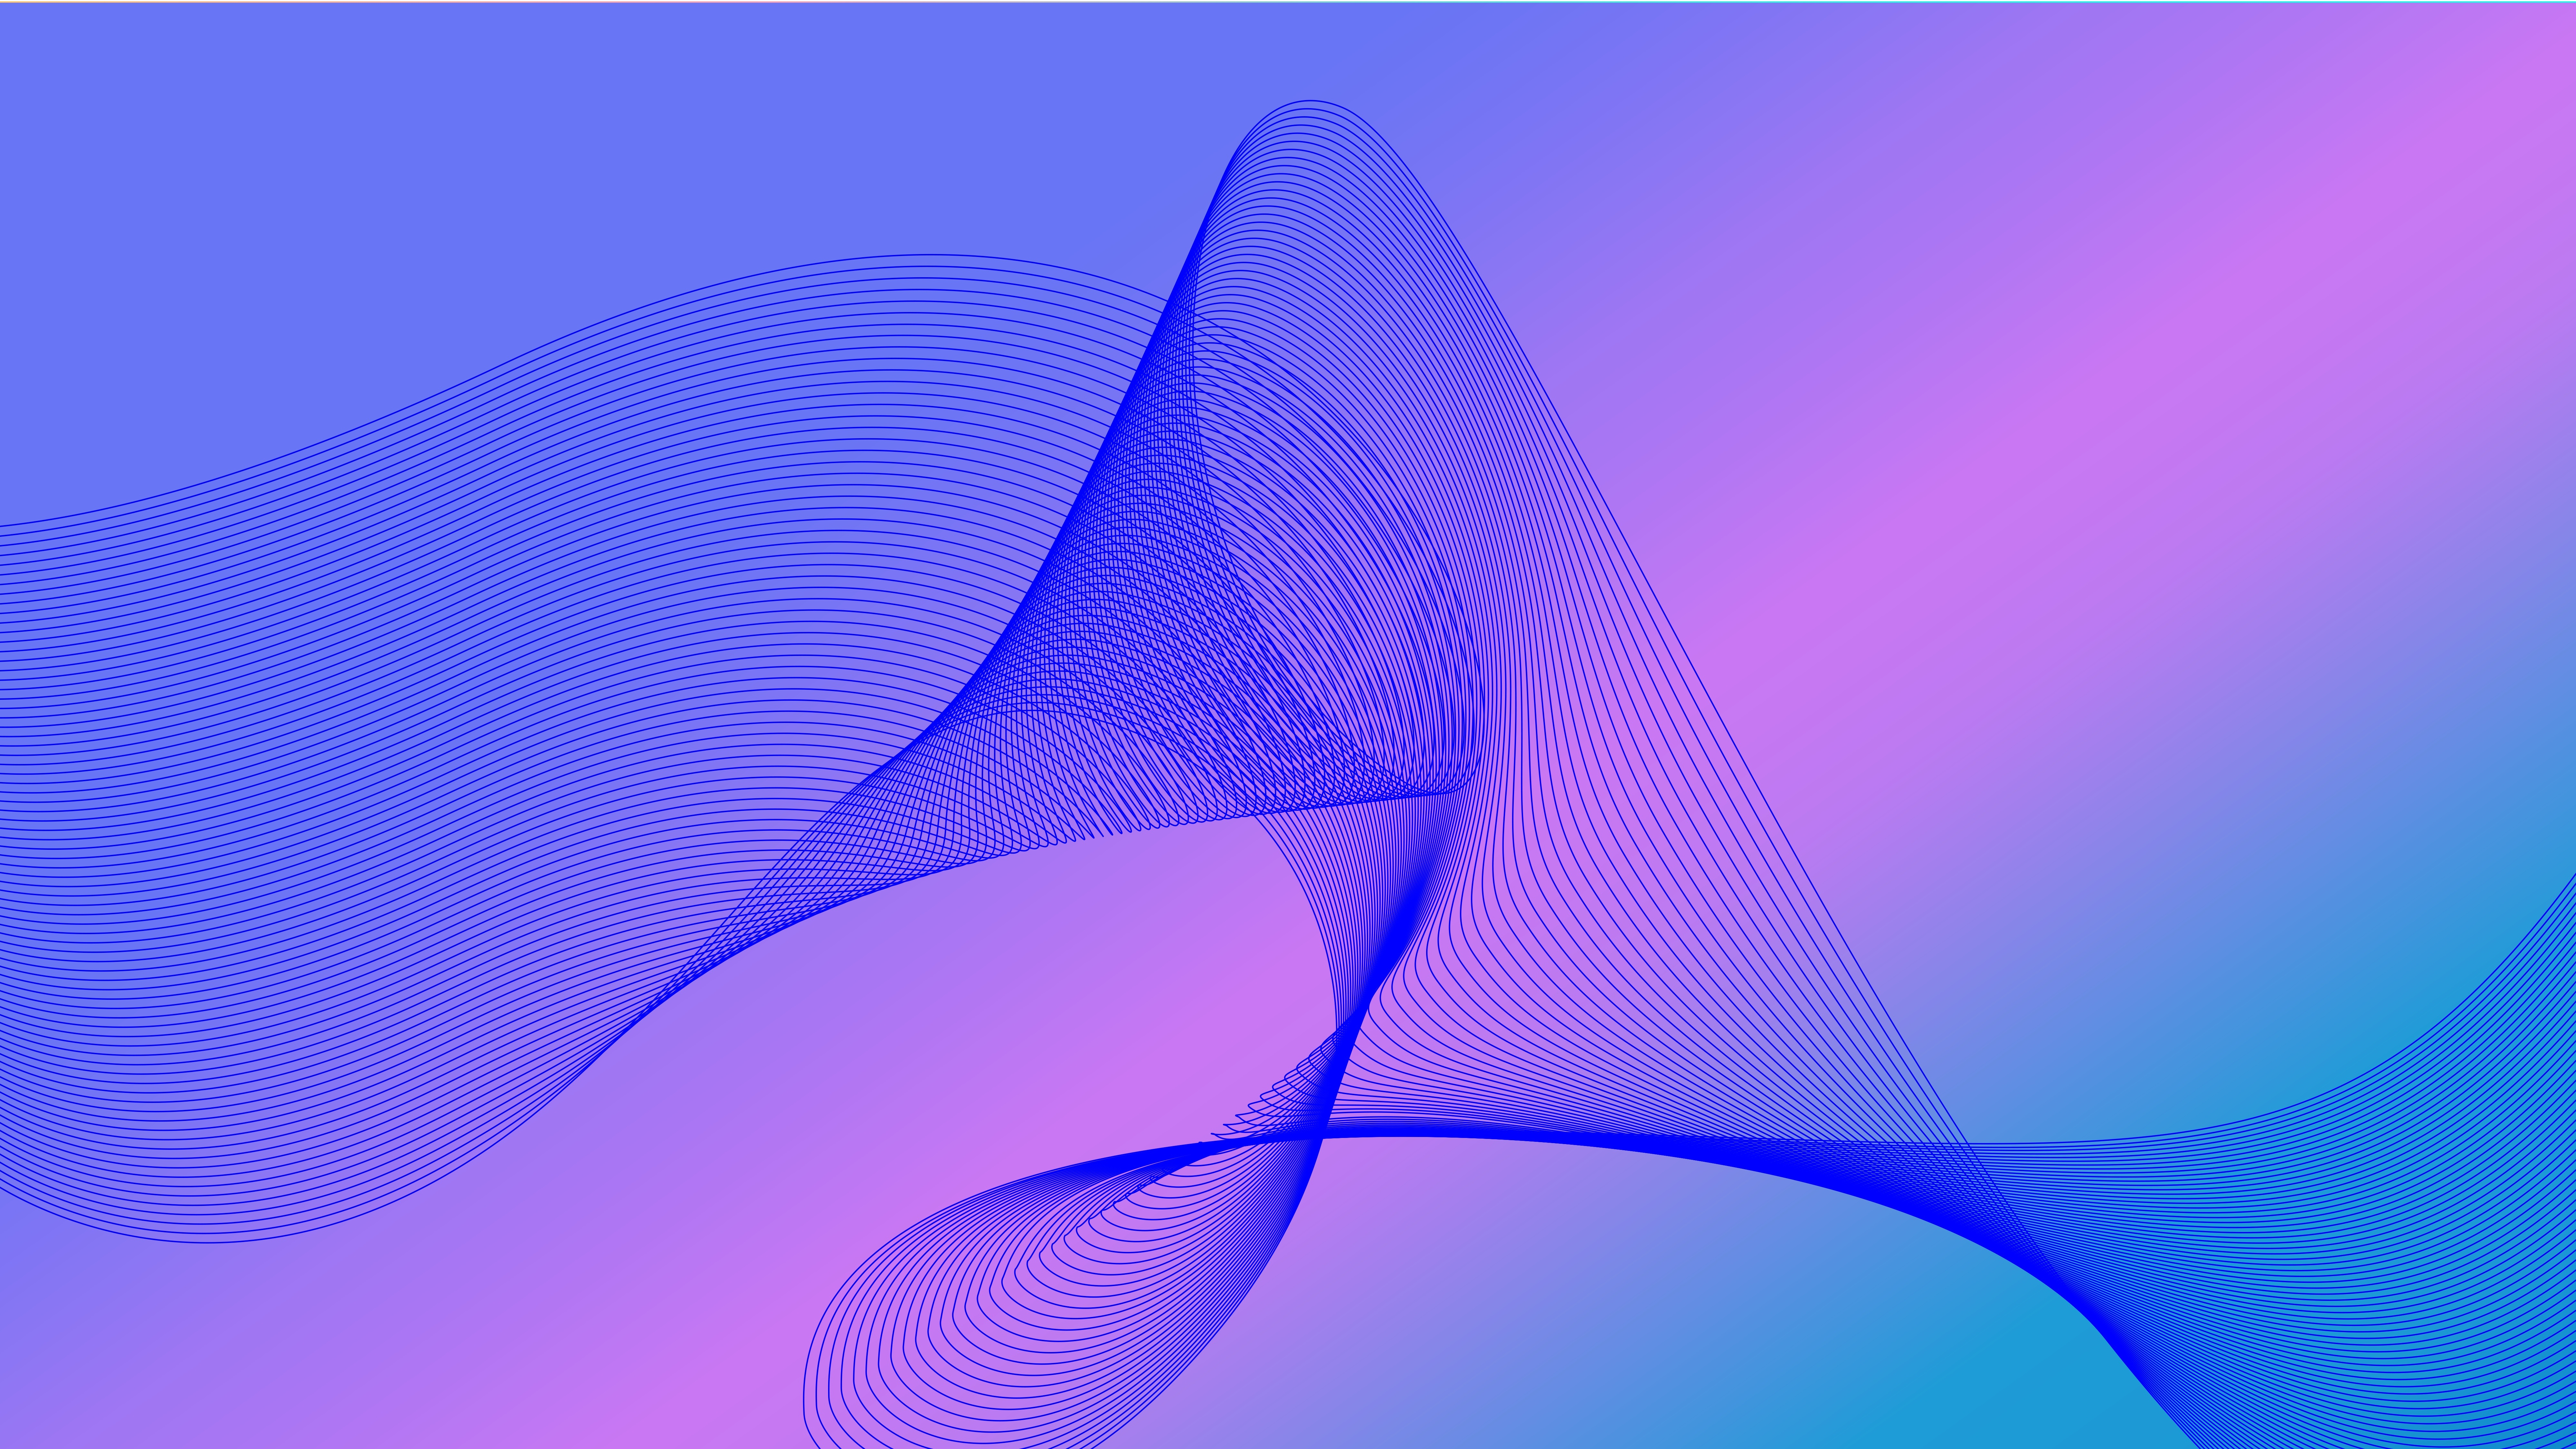 52265 download wallpaper Abstract, Lines, Wavy screensavers and pictures for free